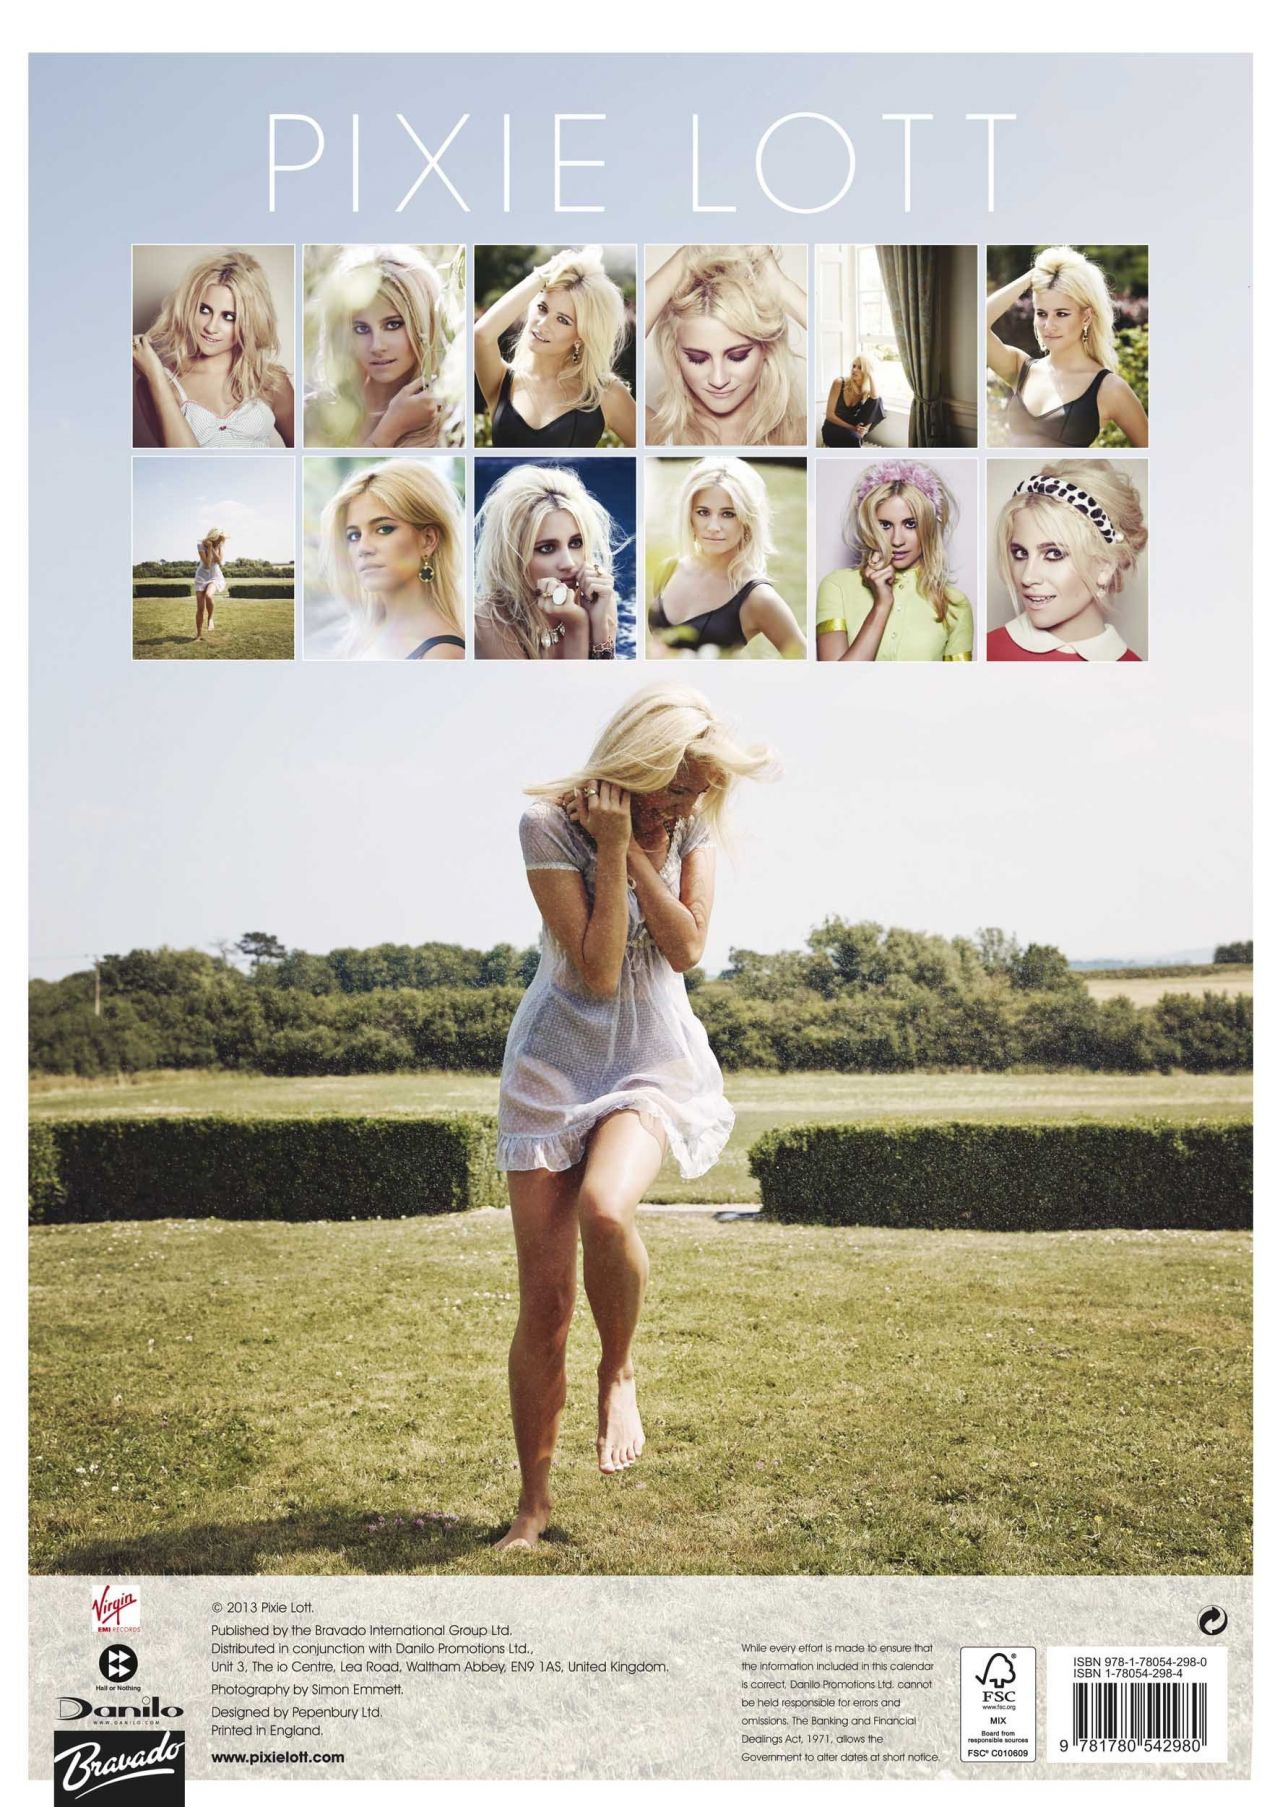 Pixie Lott - Official 2014 Calendar